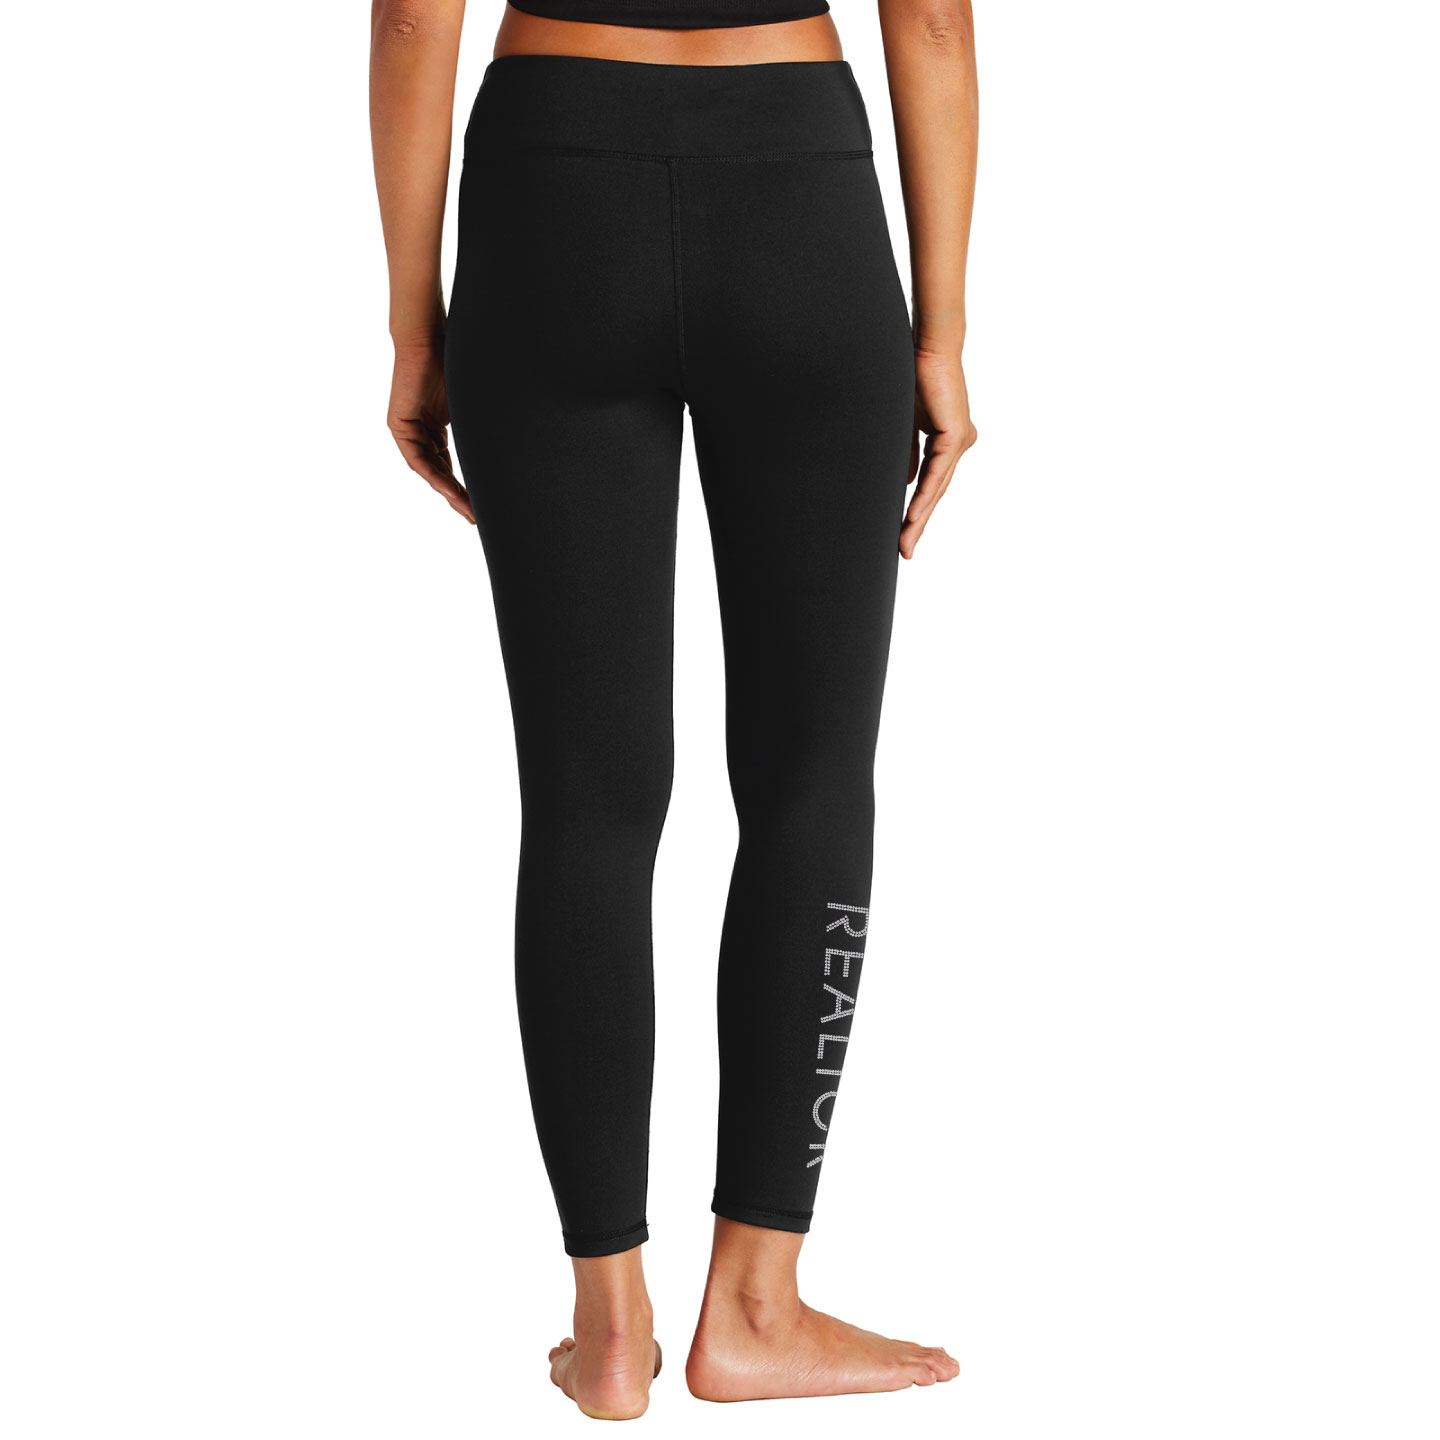 Ladies Thick Sport Leggings - RCL4091